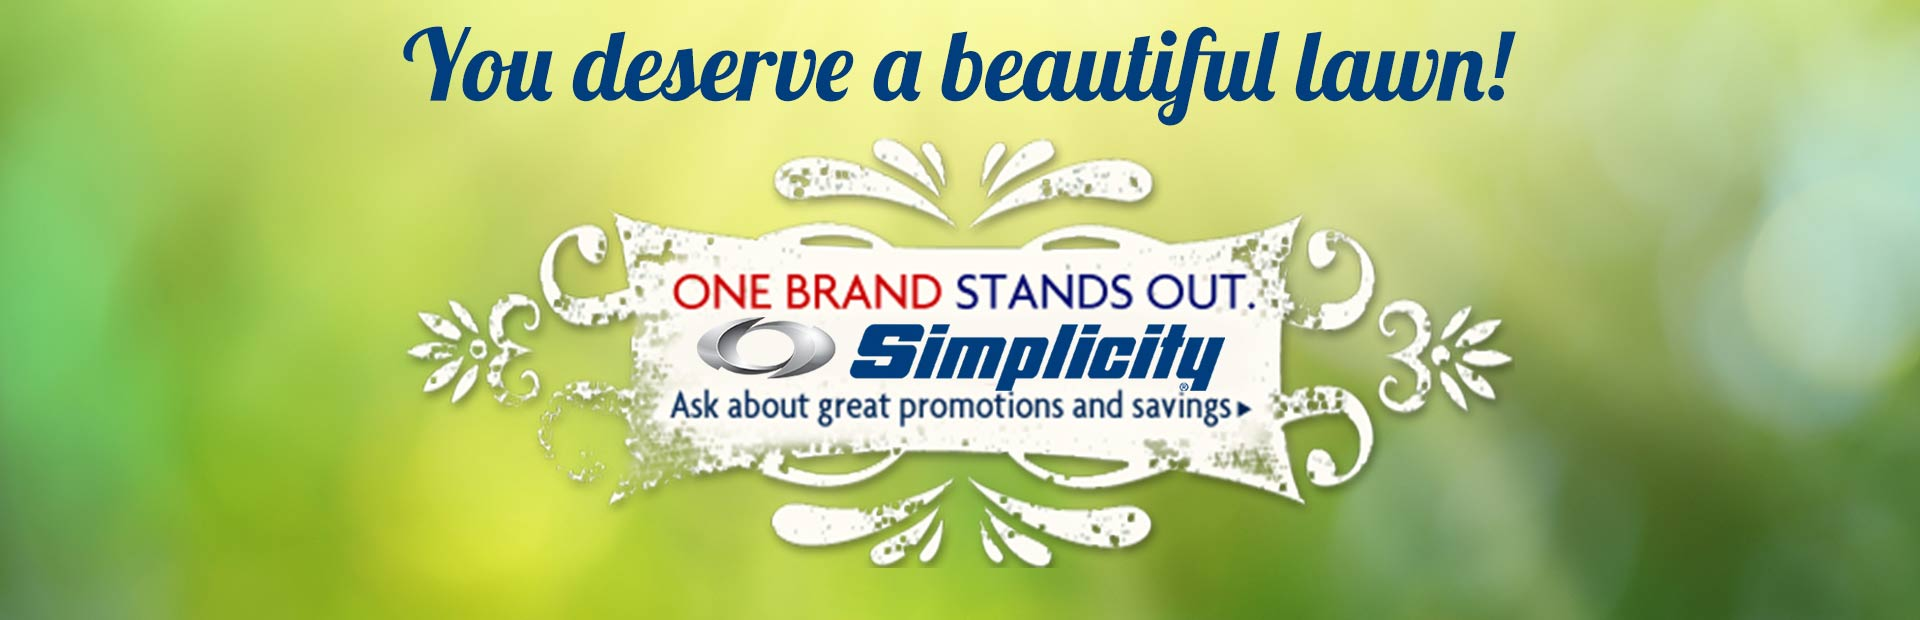 You deserve a beautiful lawn! One brand stands out: Simplicity. Click here to view the models and don't forget to ask about great promotions and savings!